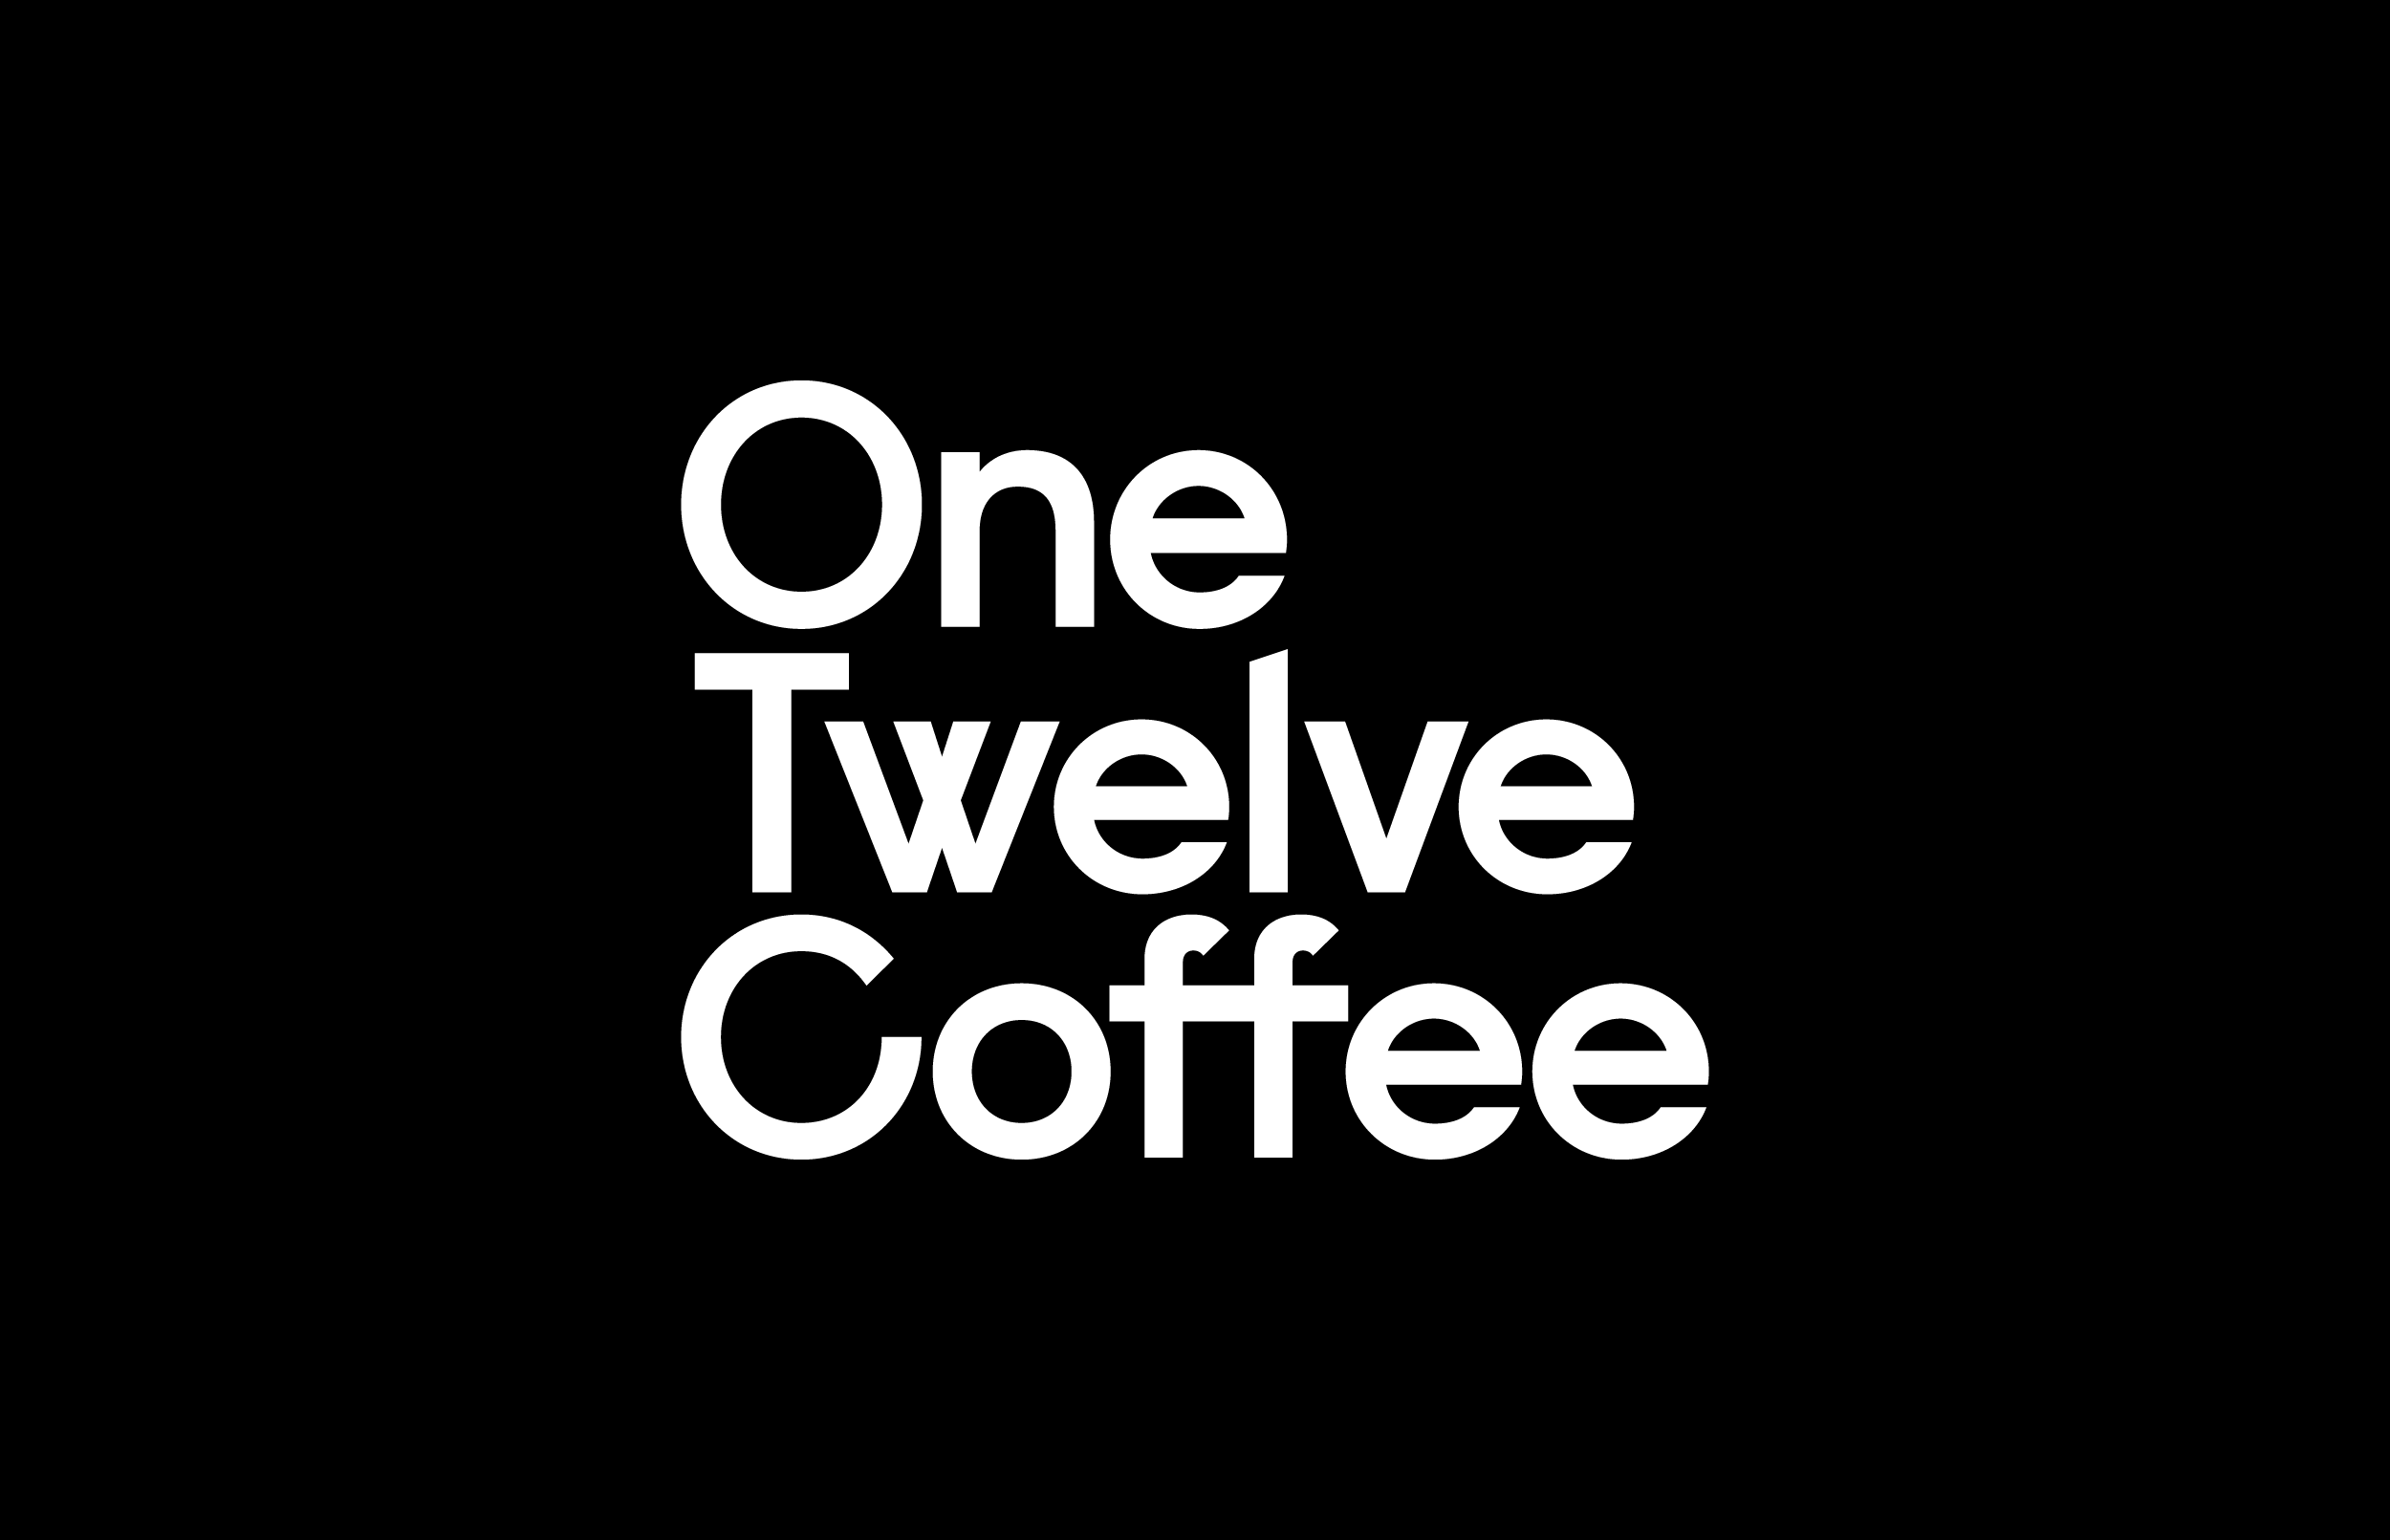 one twelve coffee shop newport branding brand graphic design illustration dynamic pobl housing homeless signpainting cardiff wales yellow